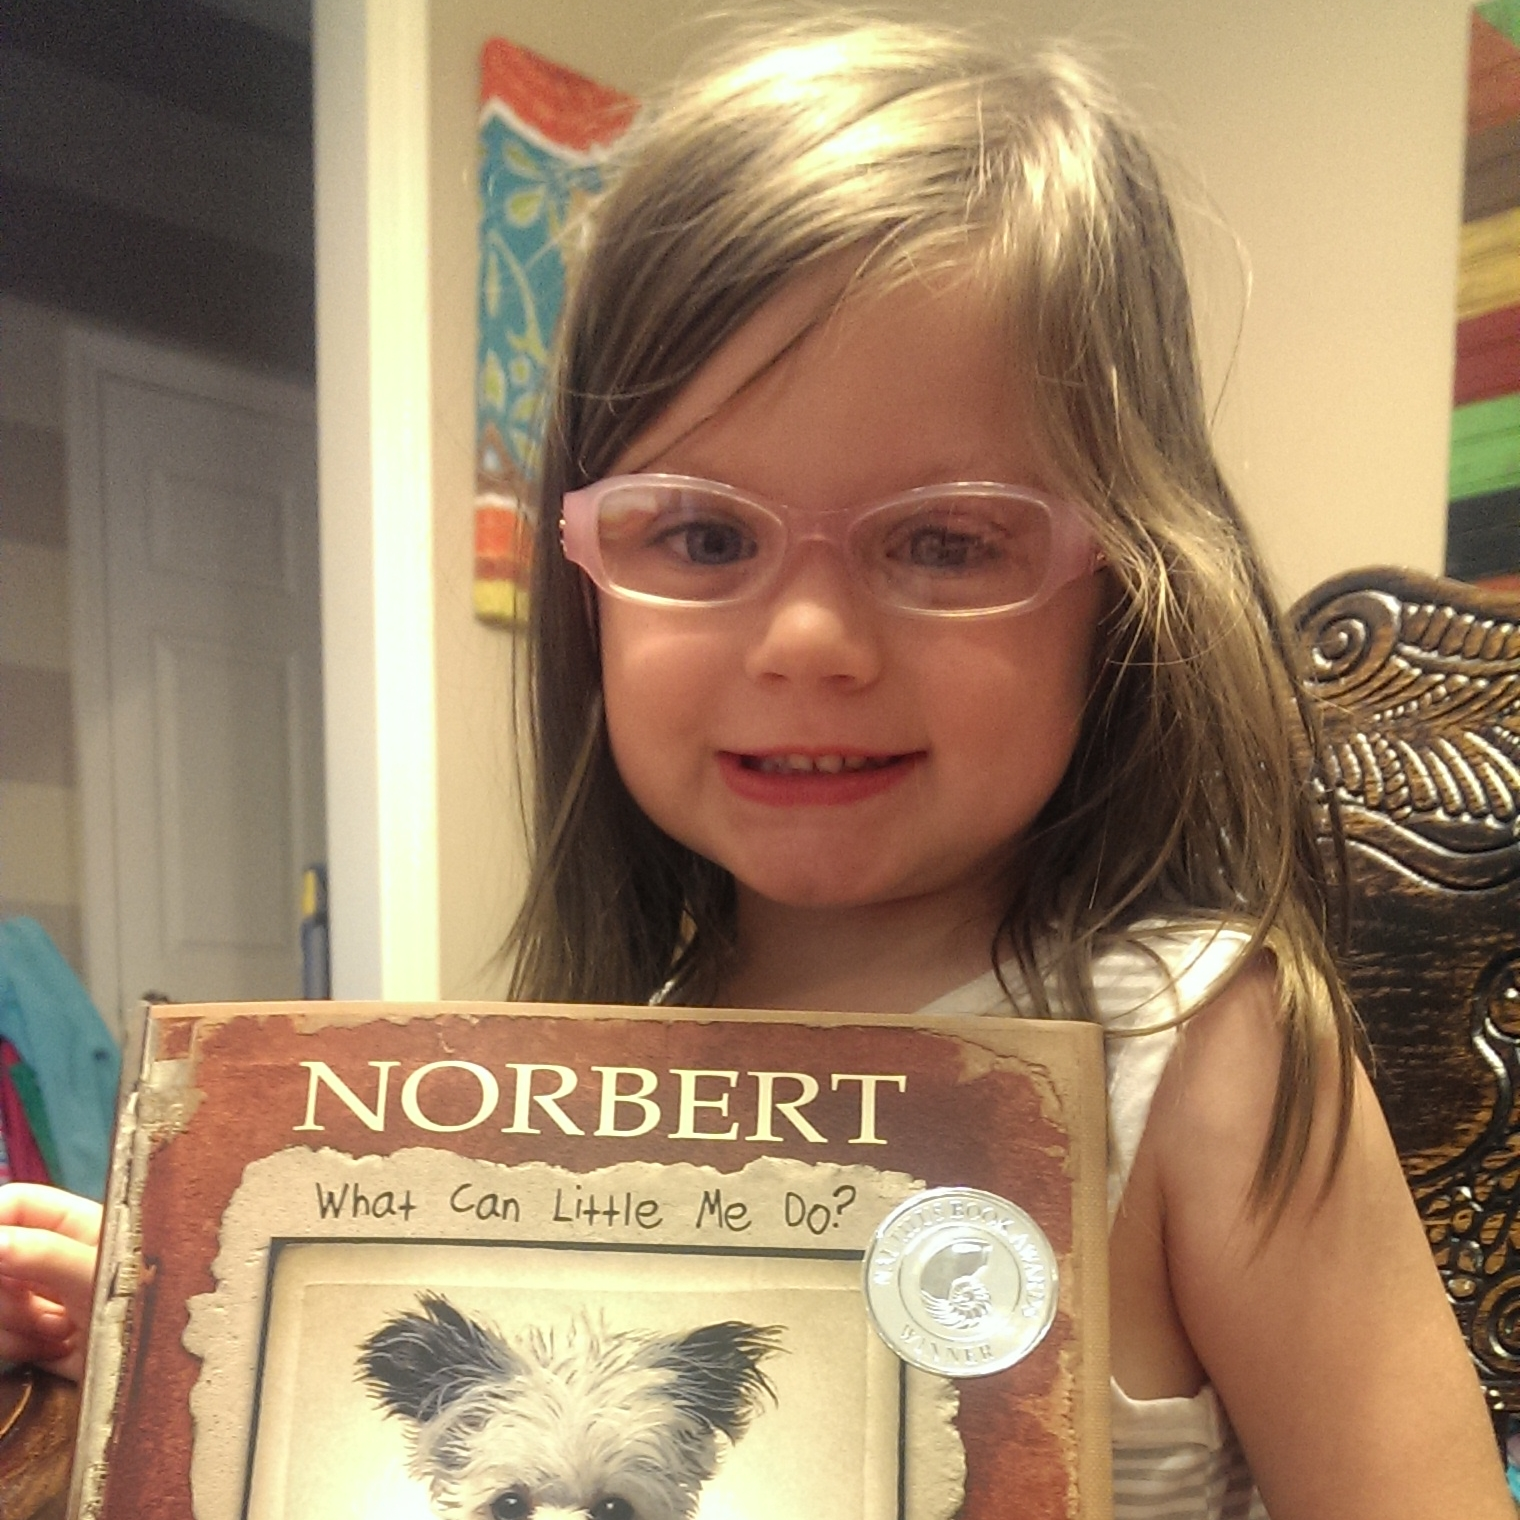 20140529_Sophie and Norbert.jpg